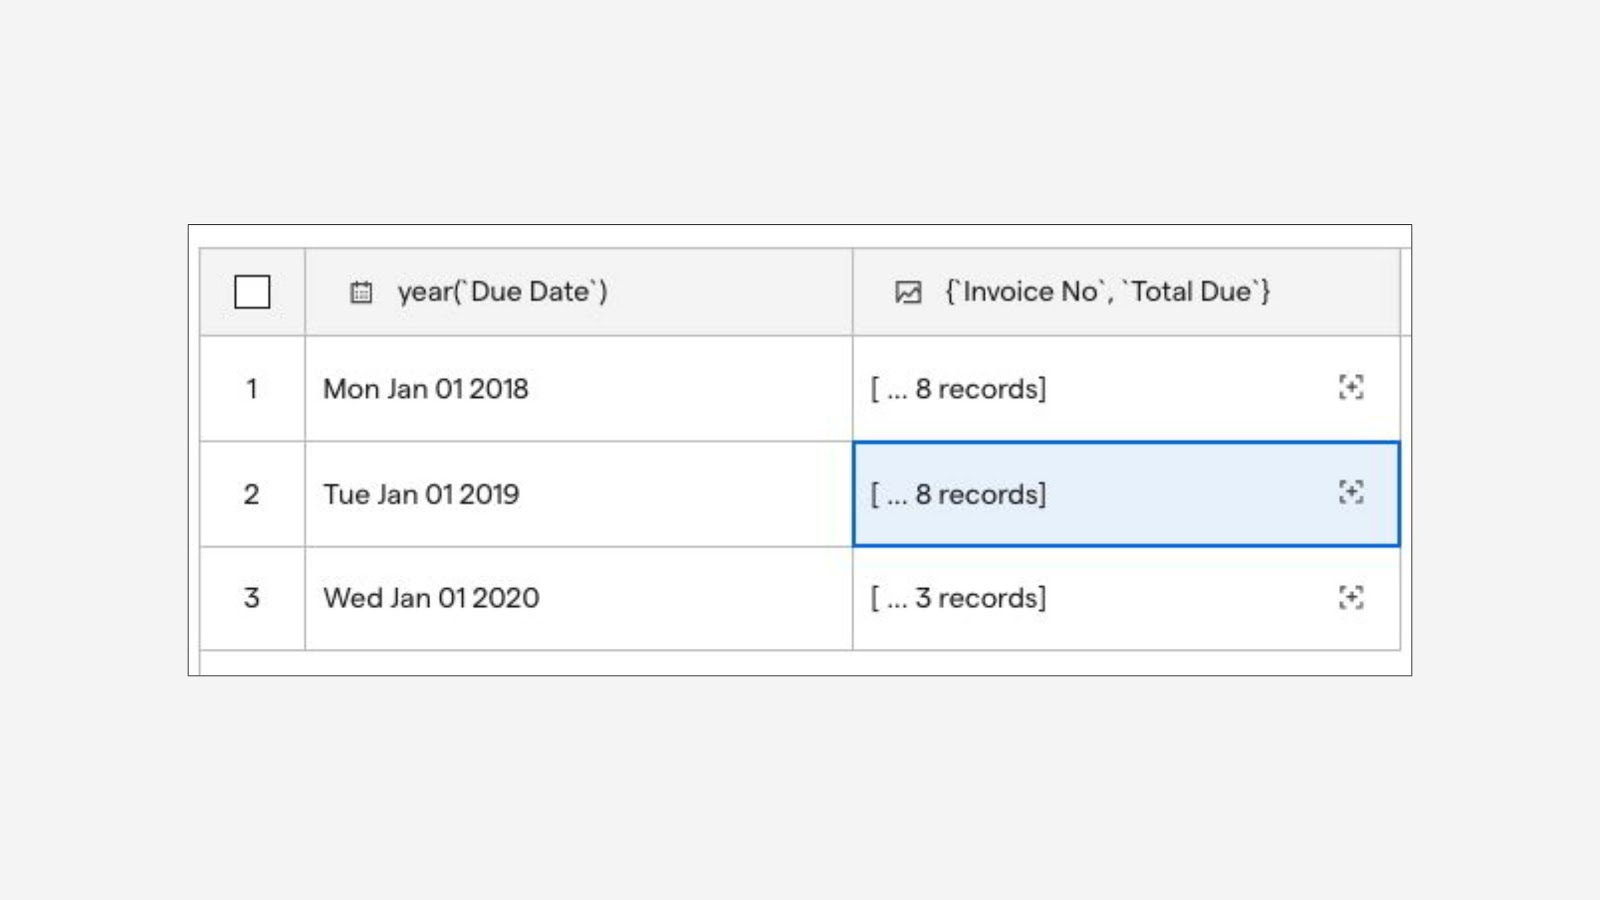 Query result showing all invoices broken down by year